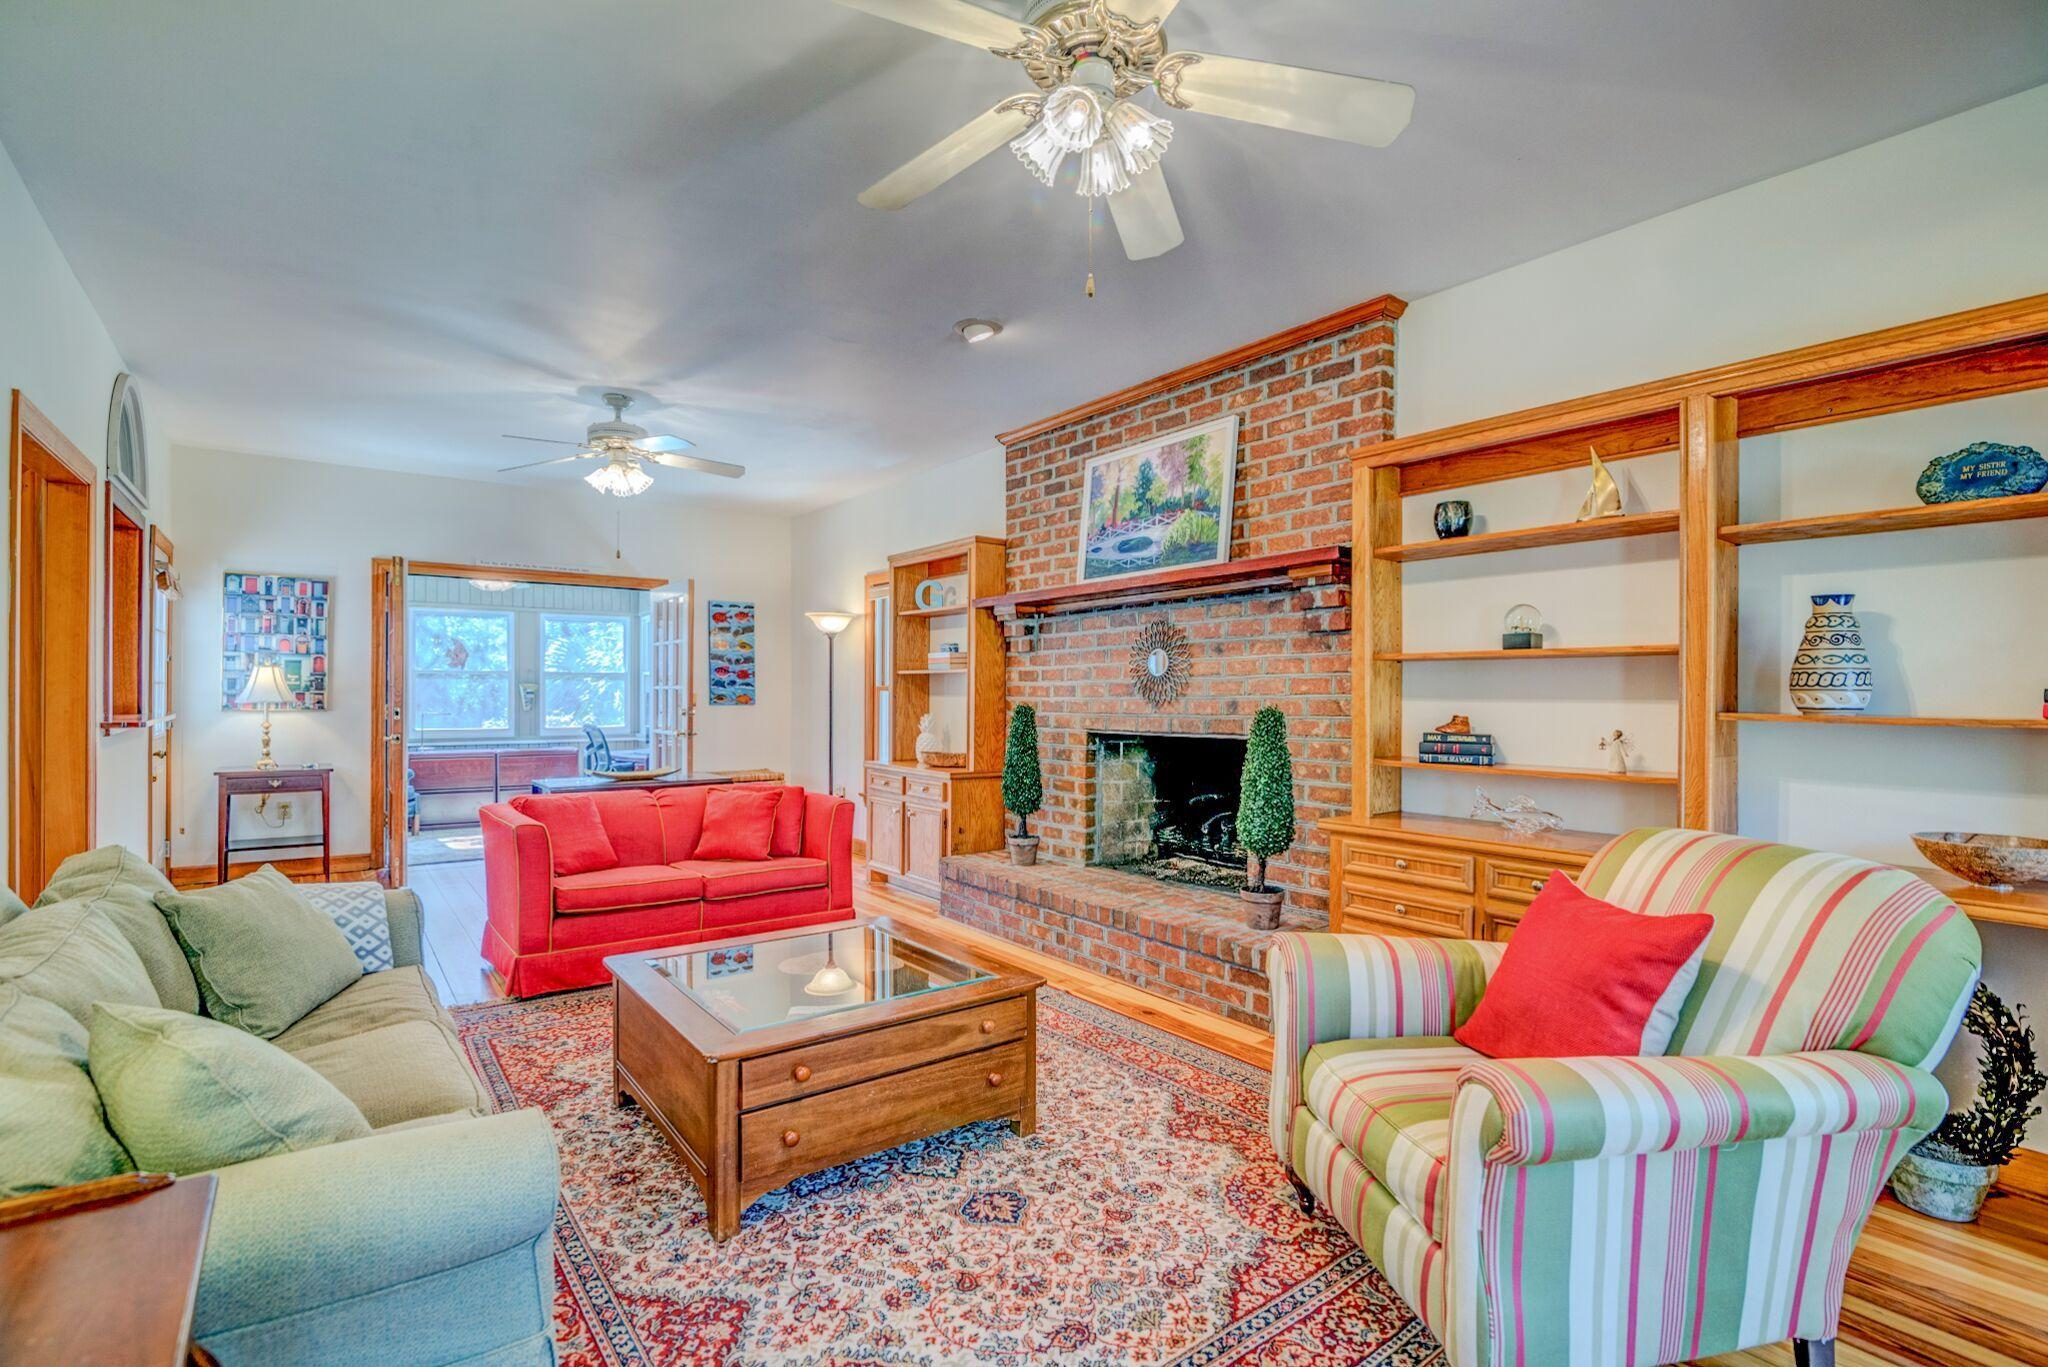 Alston Point Homes For Sale - 585 Flannery, Mount Pleasant, SC - 13